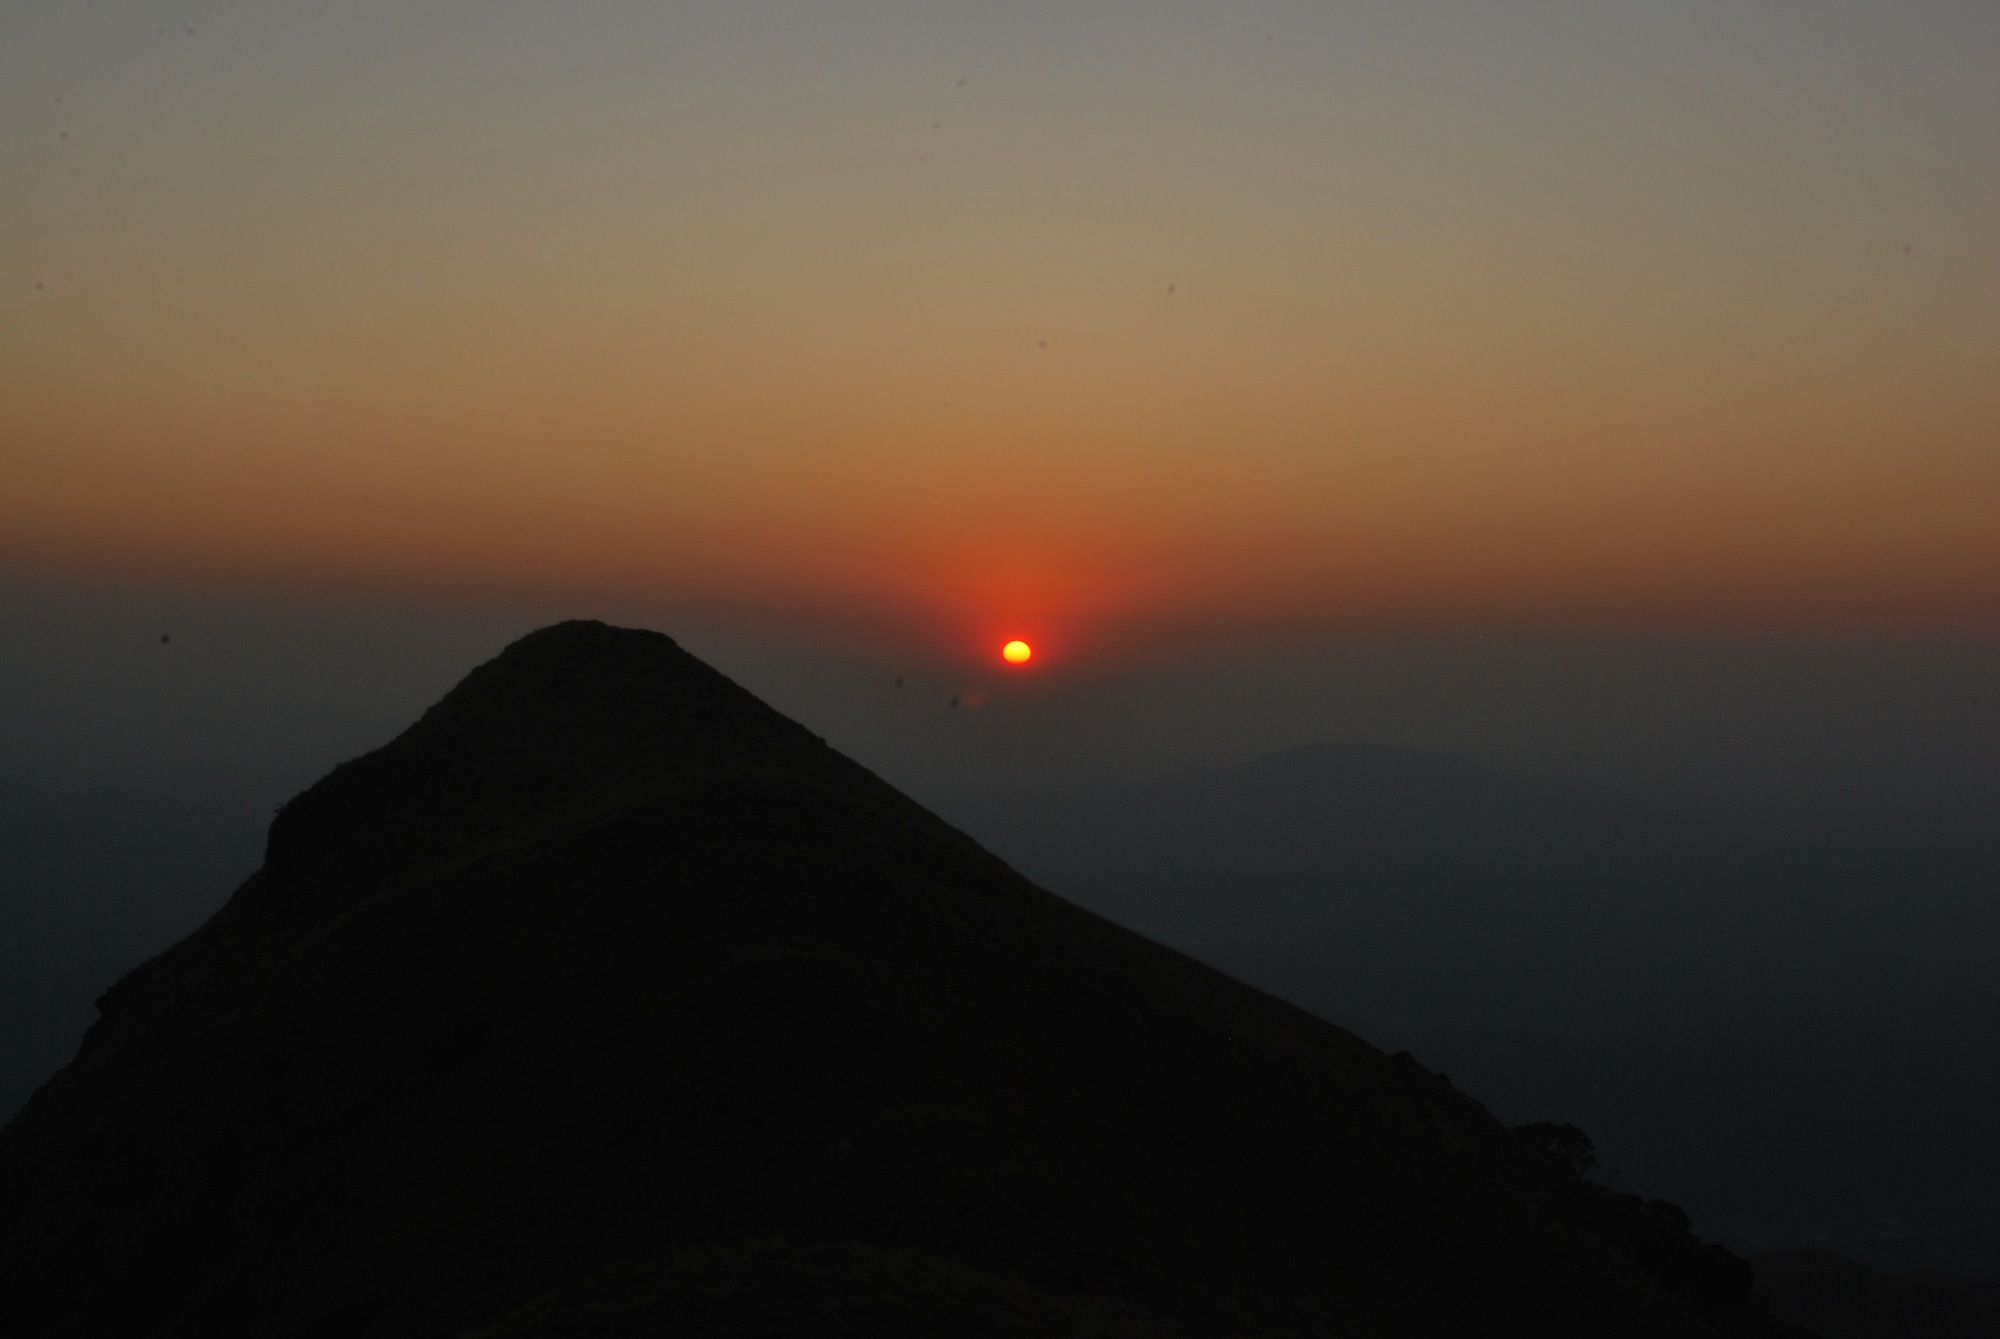 Sunset at Kumara Parvatha